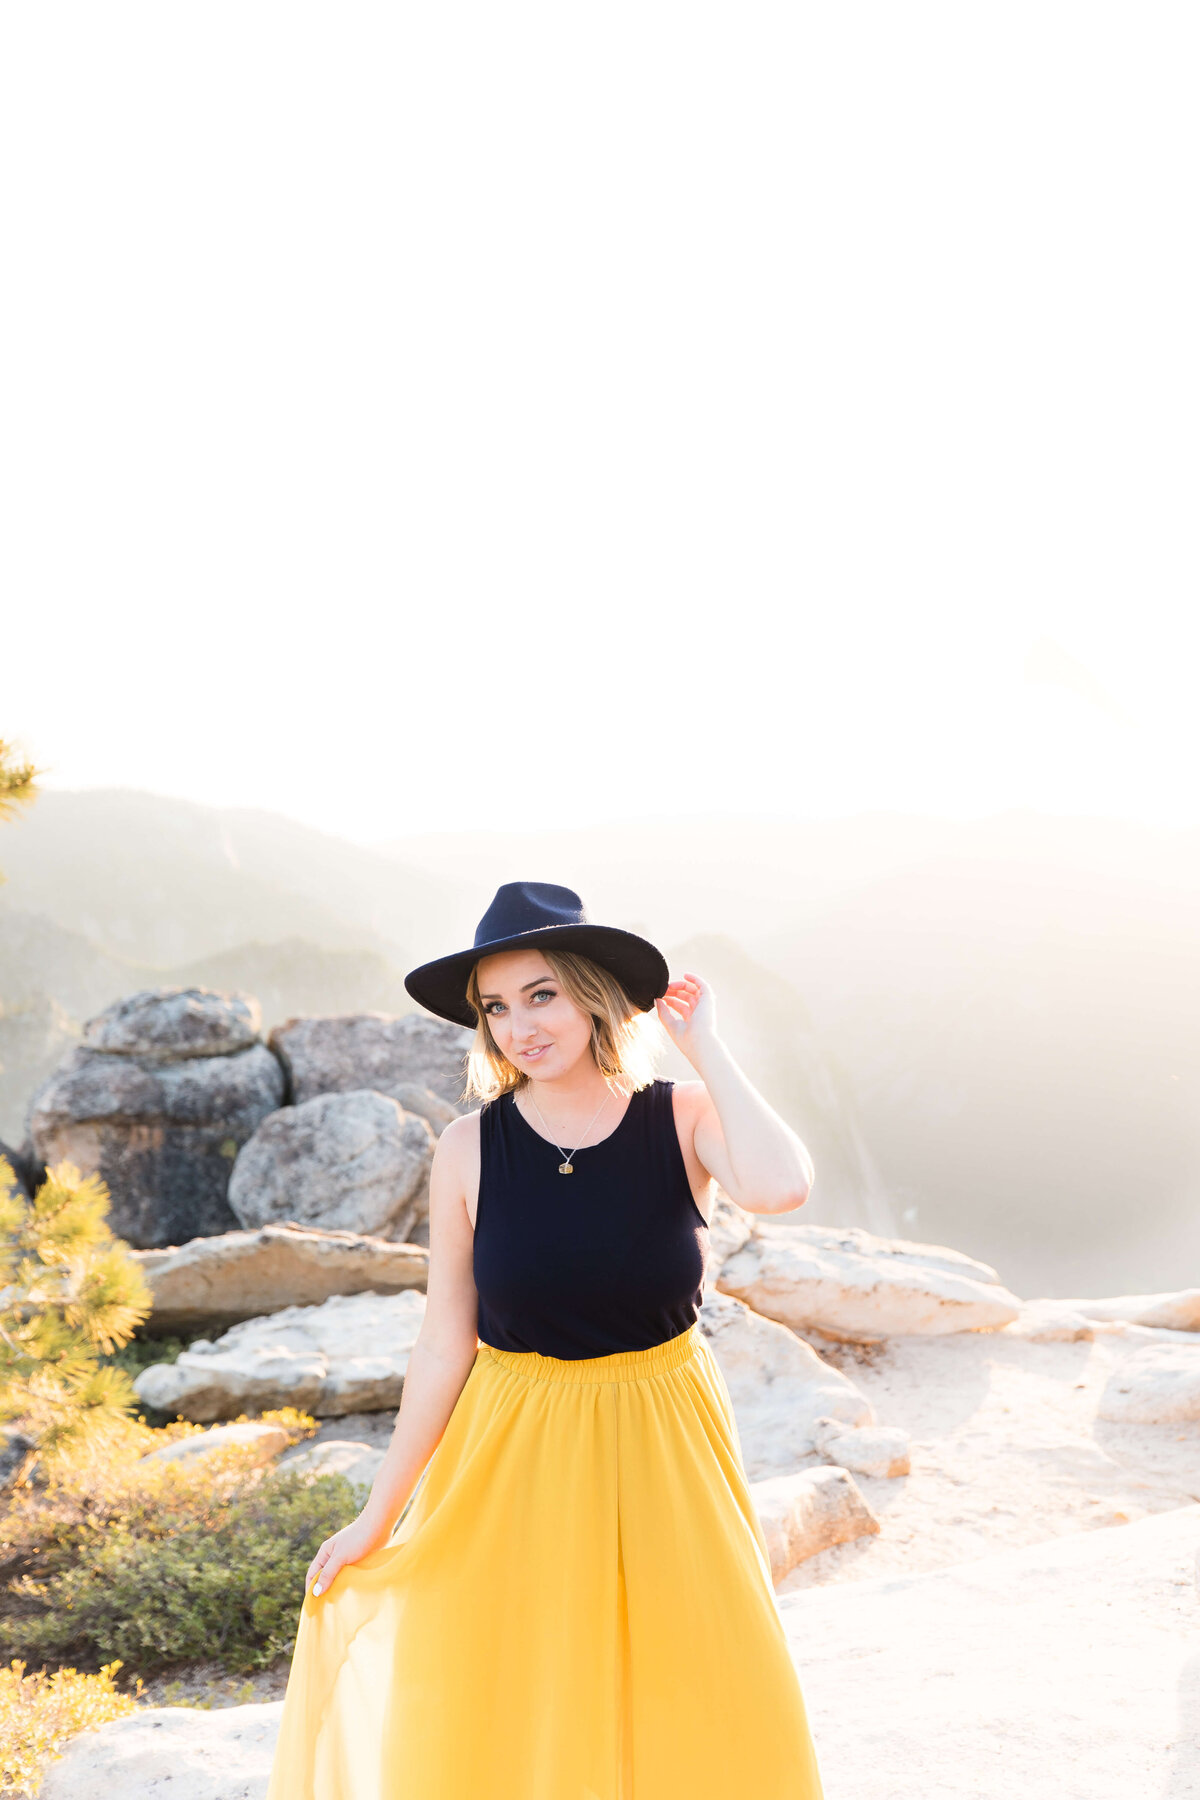 CaitlingYosemiteShoot2019 (253 of 272)